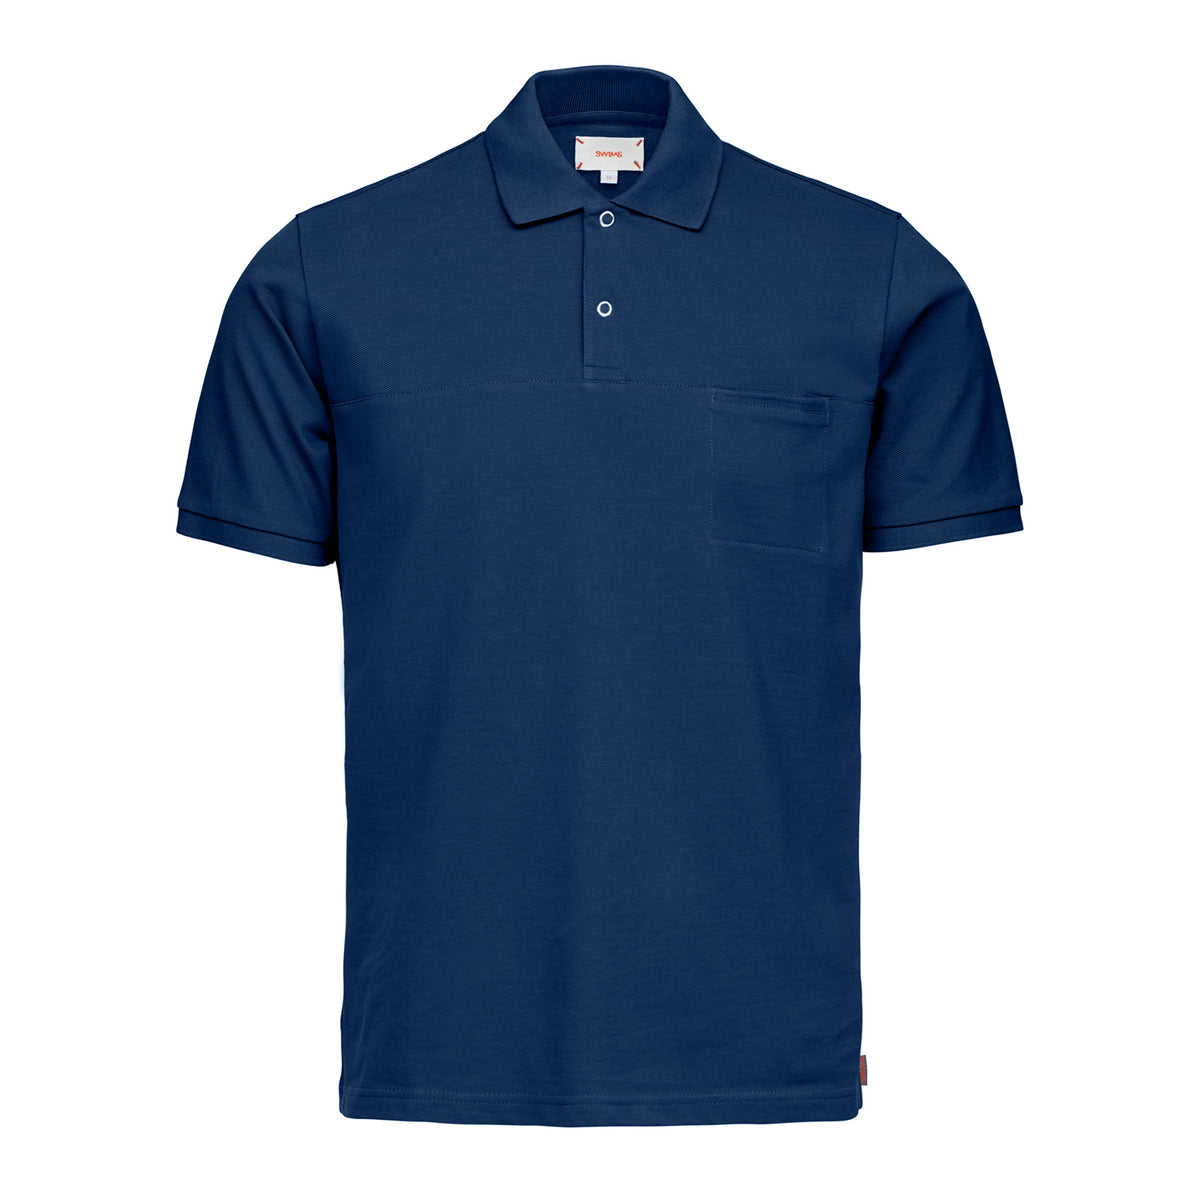 Breeze Polo Shirt - background::white,variant::Navy